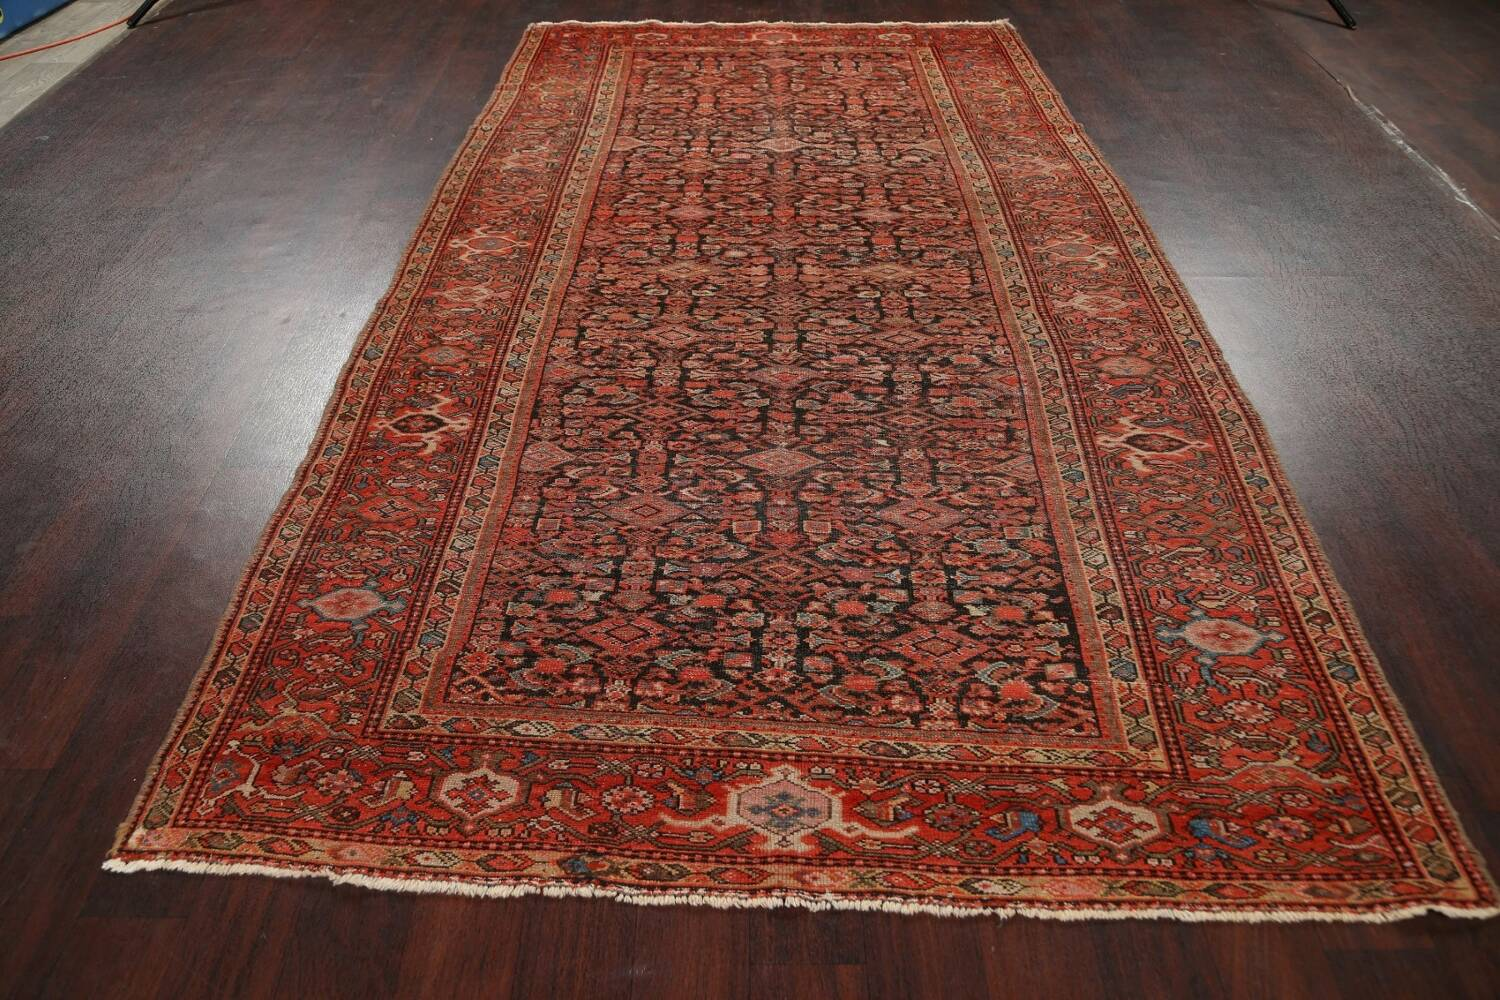 Pre-1900 Antique Vegetable Dye Malayer Persian Area Rug 5x10 image 14